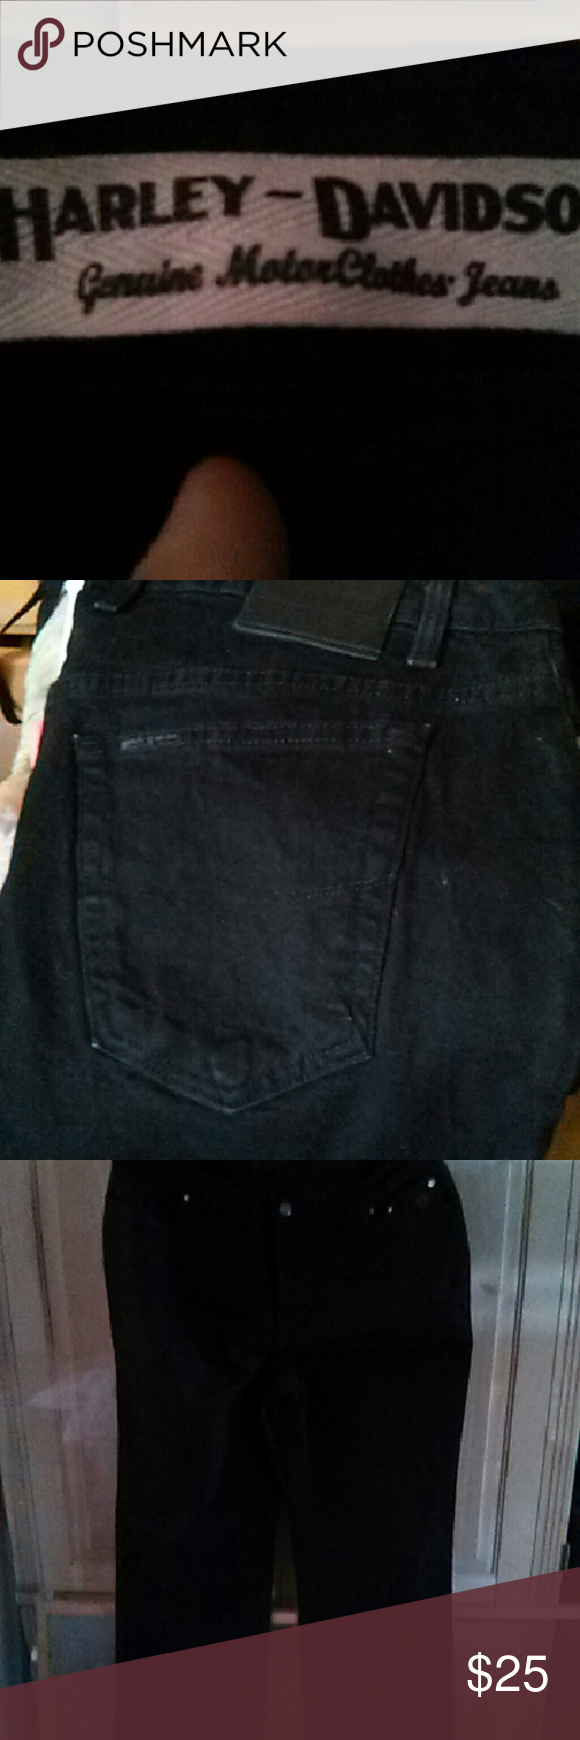 Harley davidson jeans H.D. womens black jeans size 22 boot cut in excellent condition Harley-Davidson Jeans Boot Cut